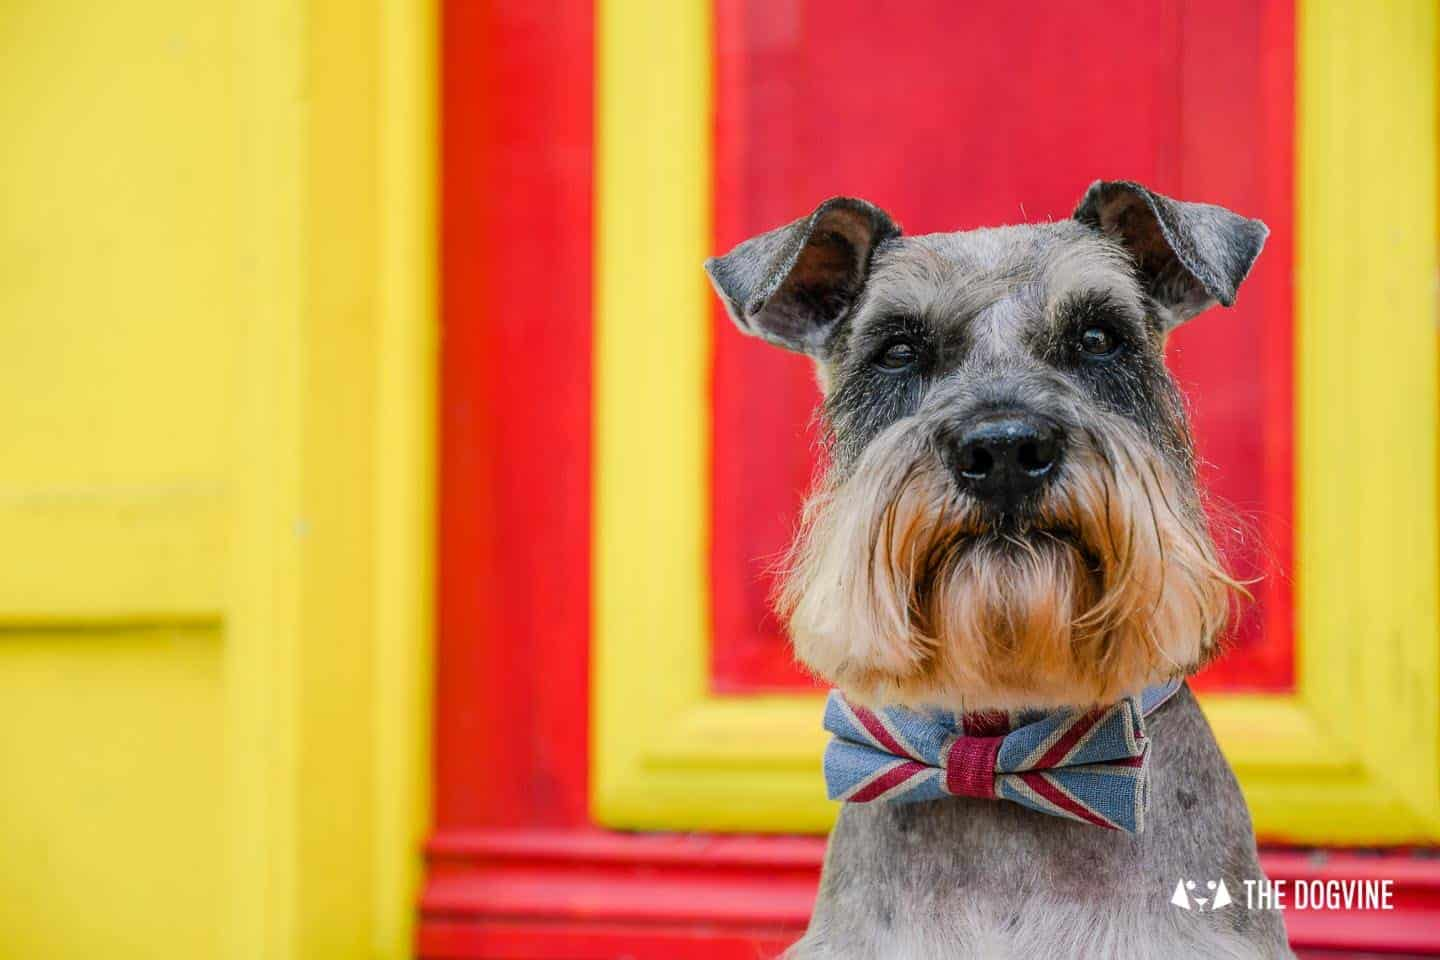 My Dog Friendly London By Pepper Chung the Schnauzer - Dog Friendly Notting Hill 15